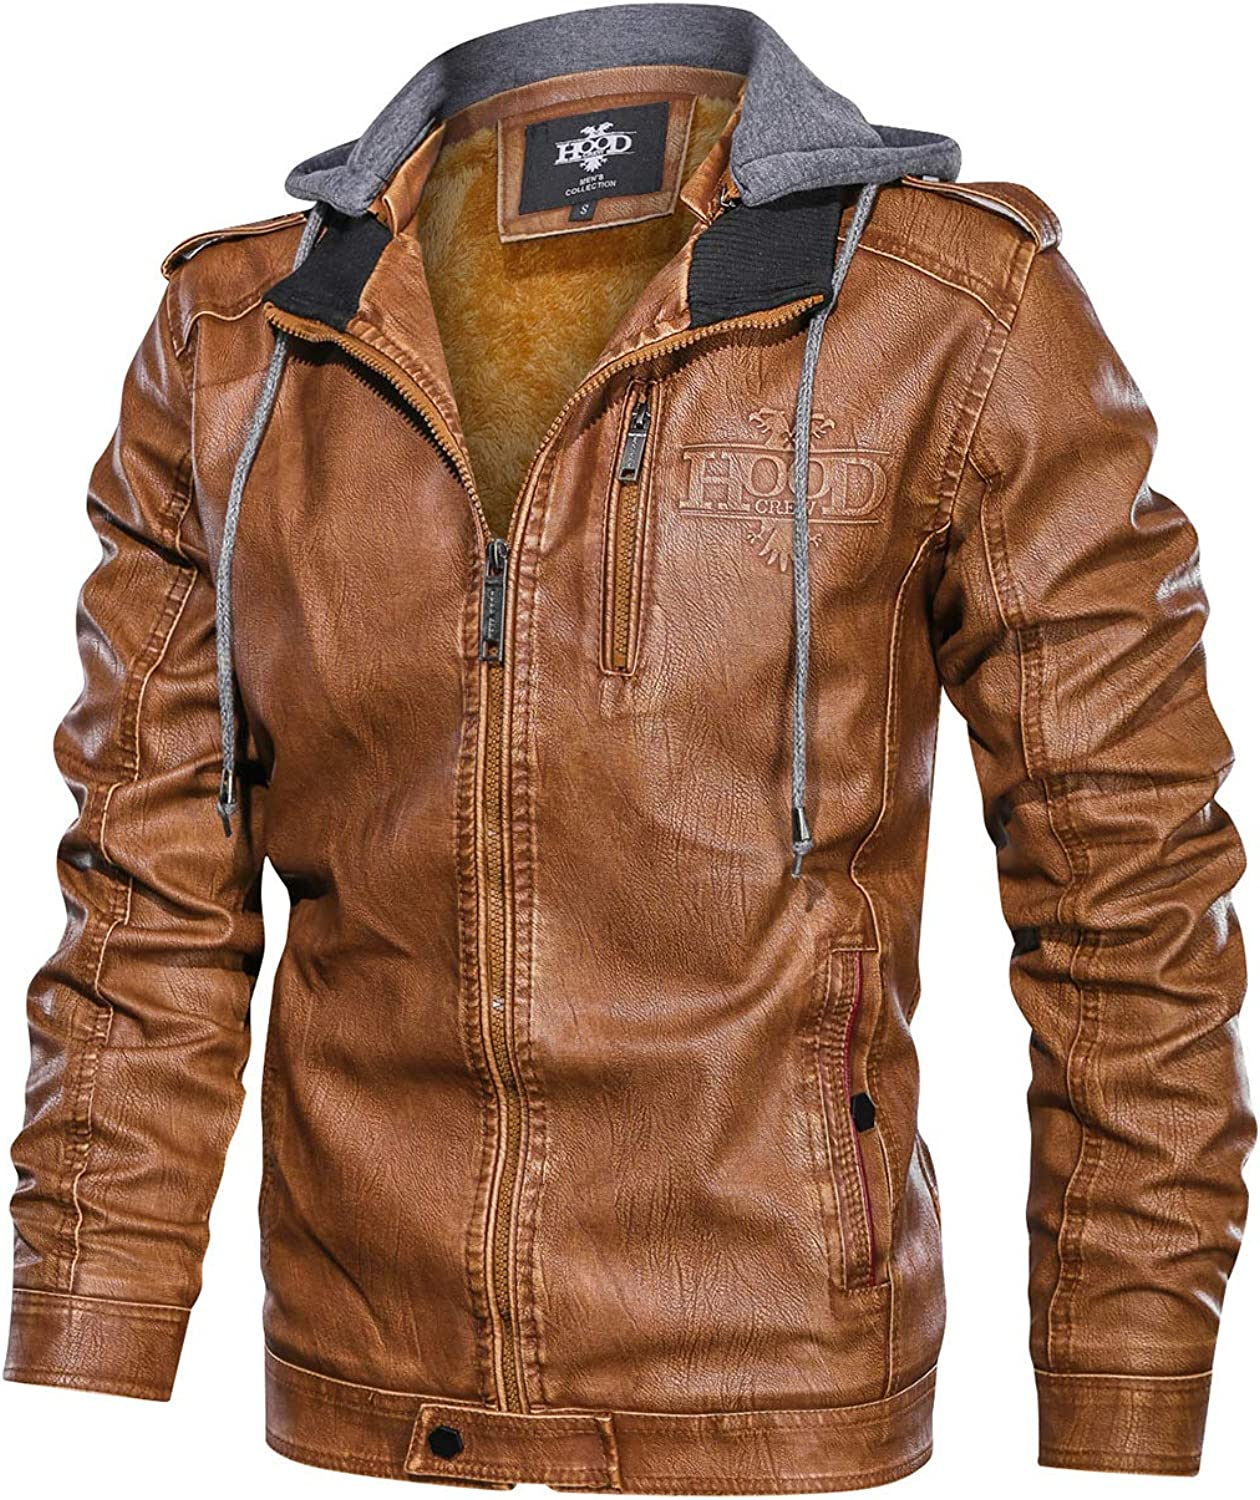 HOOD CREW Men/'s Black Brown Coffee Stand Collar Warm PU Faux Leather Zip-Up Motorcycle Jacket with a Removable Hood